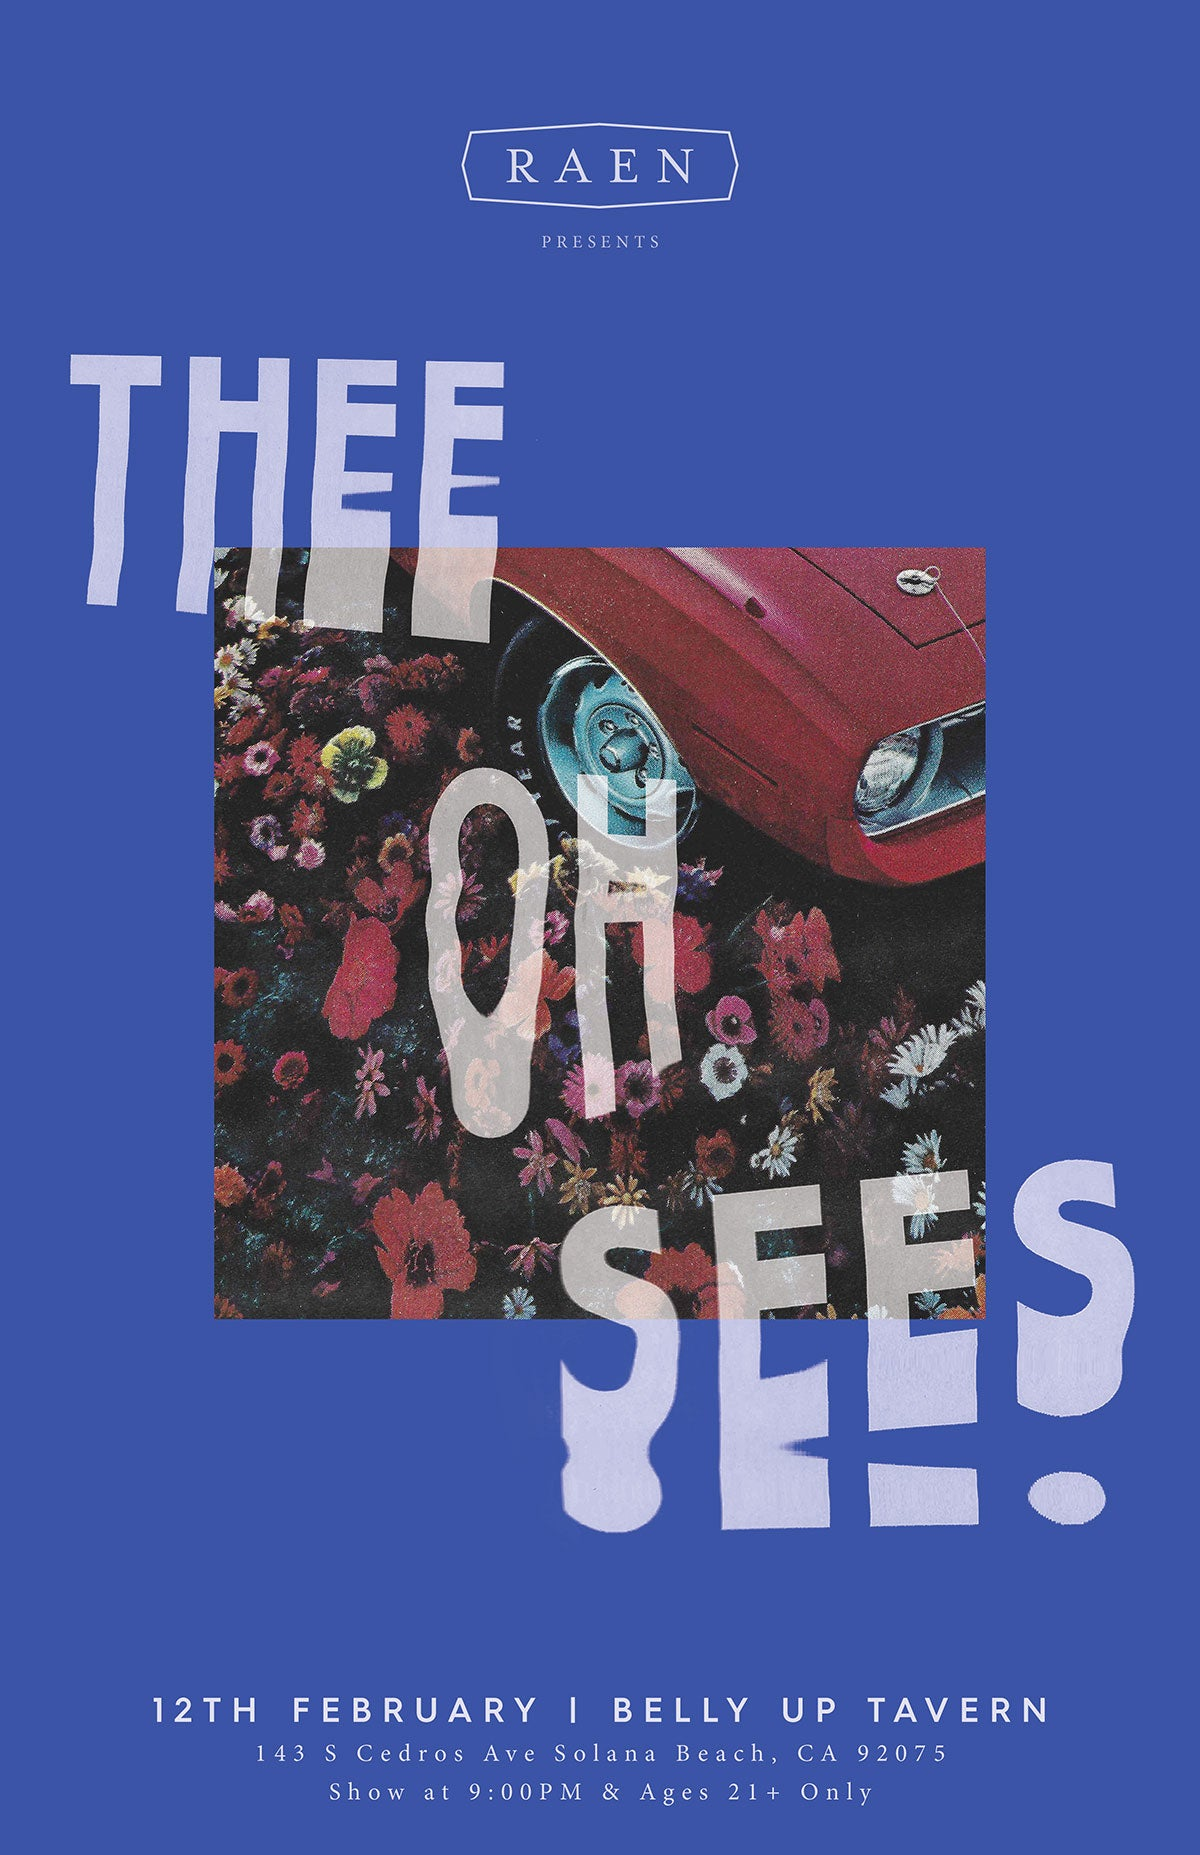 RAEN Presents: Thee Oh Sees